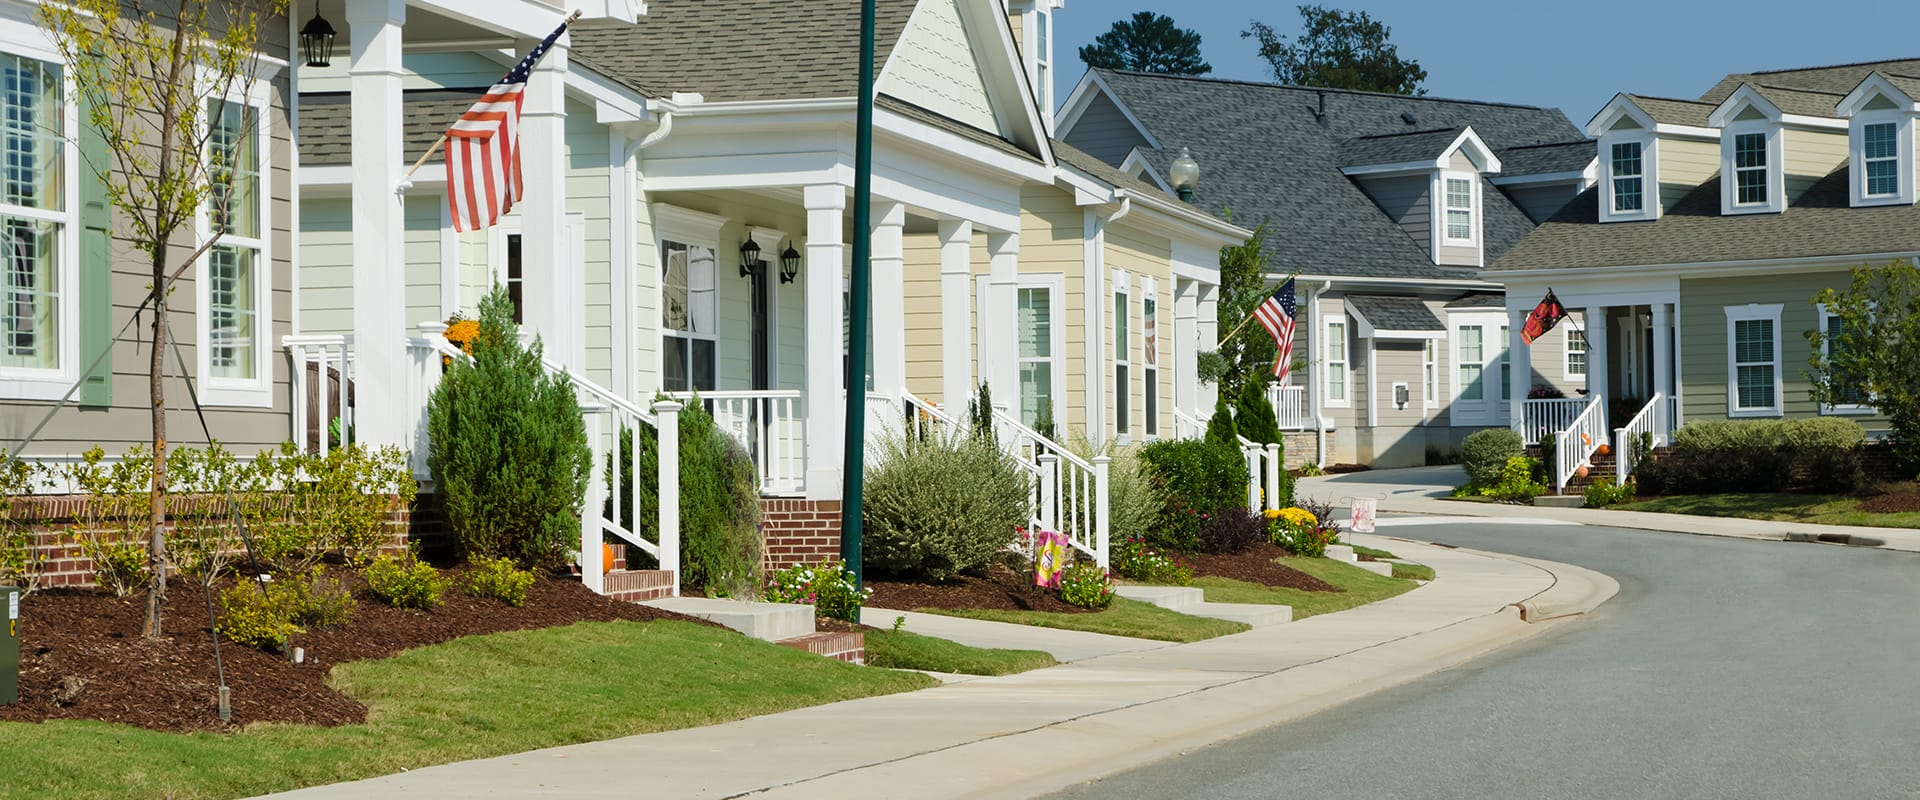 a residential neighborhood in houston texas serviced by cantu home help services